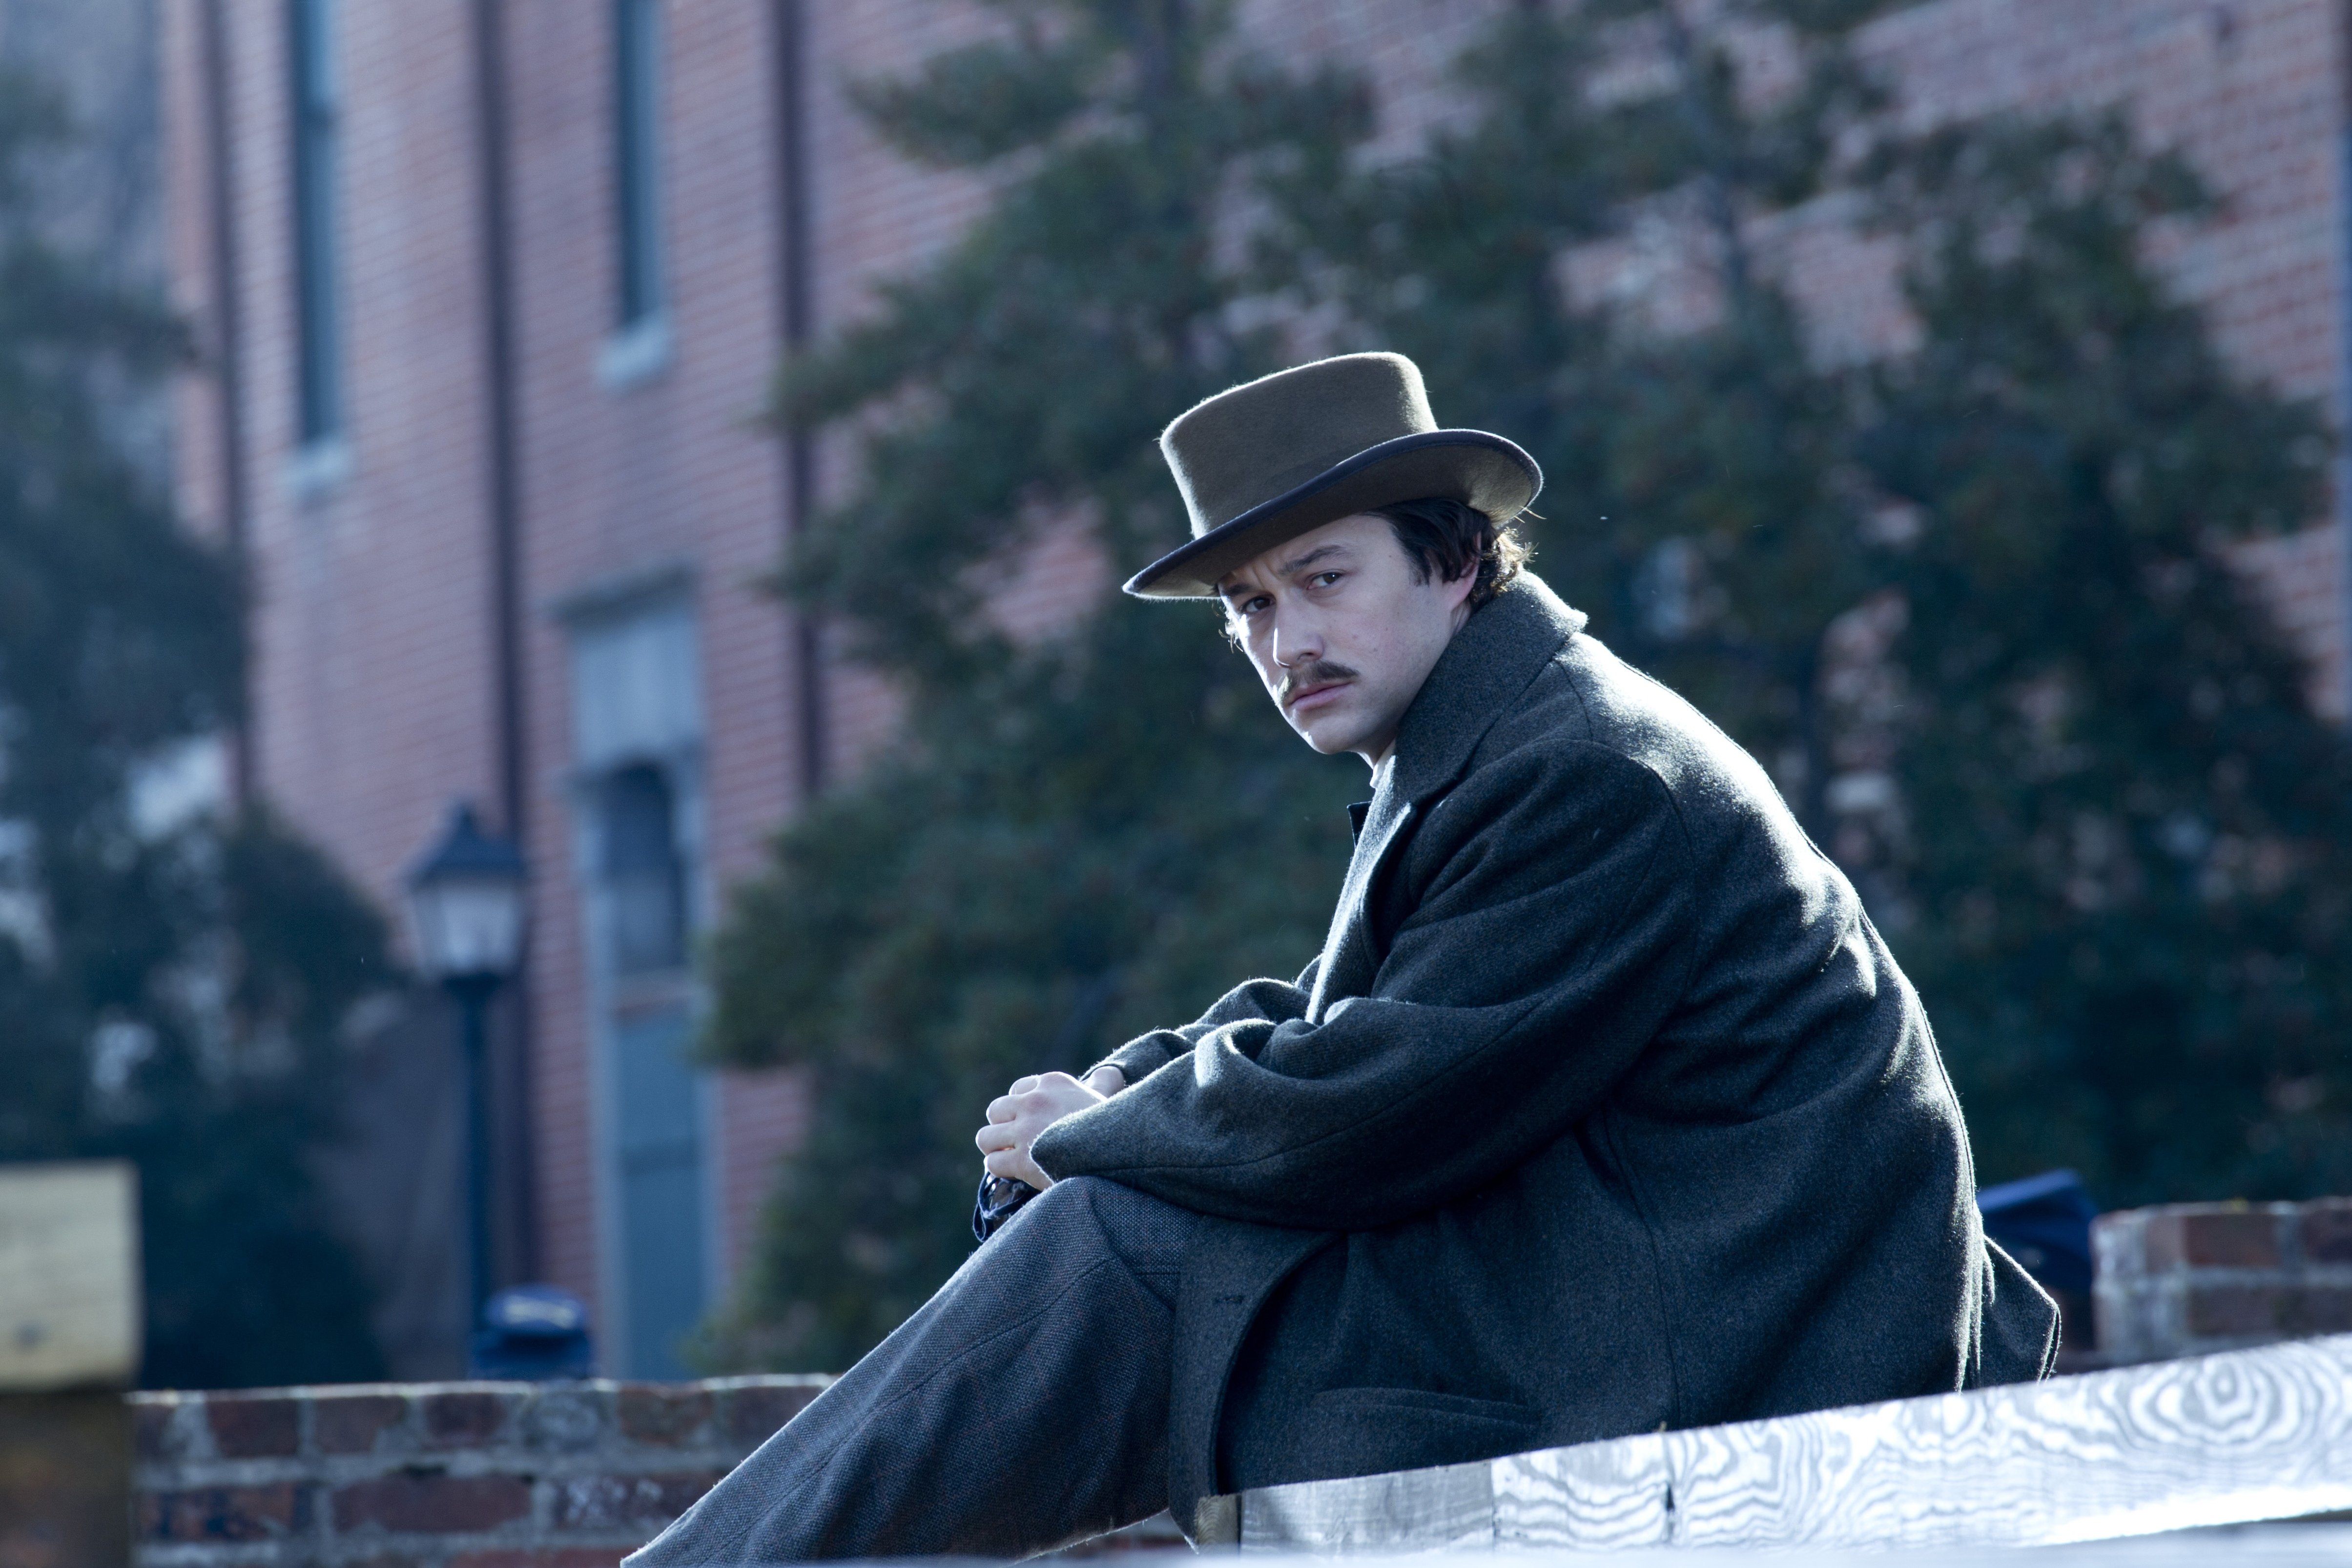 movie lincoln Lincoln movie reviews & metacritic score: lincoln is a revealing drama that focuses on the 16th president's tumultuous final months in office in a nation di.